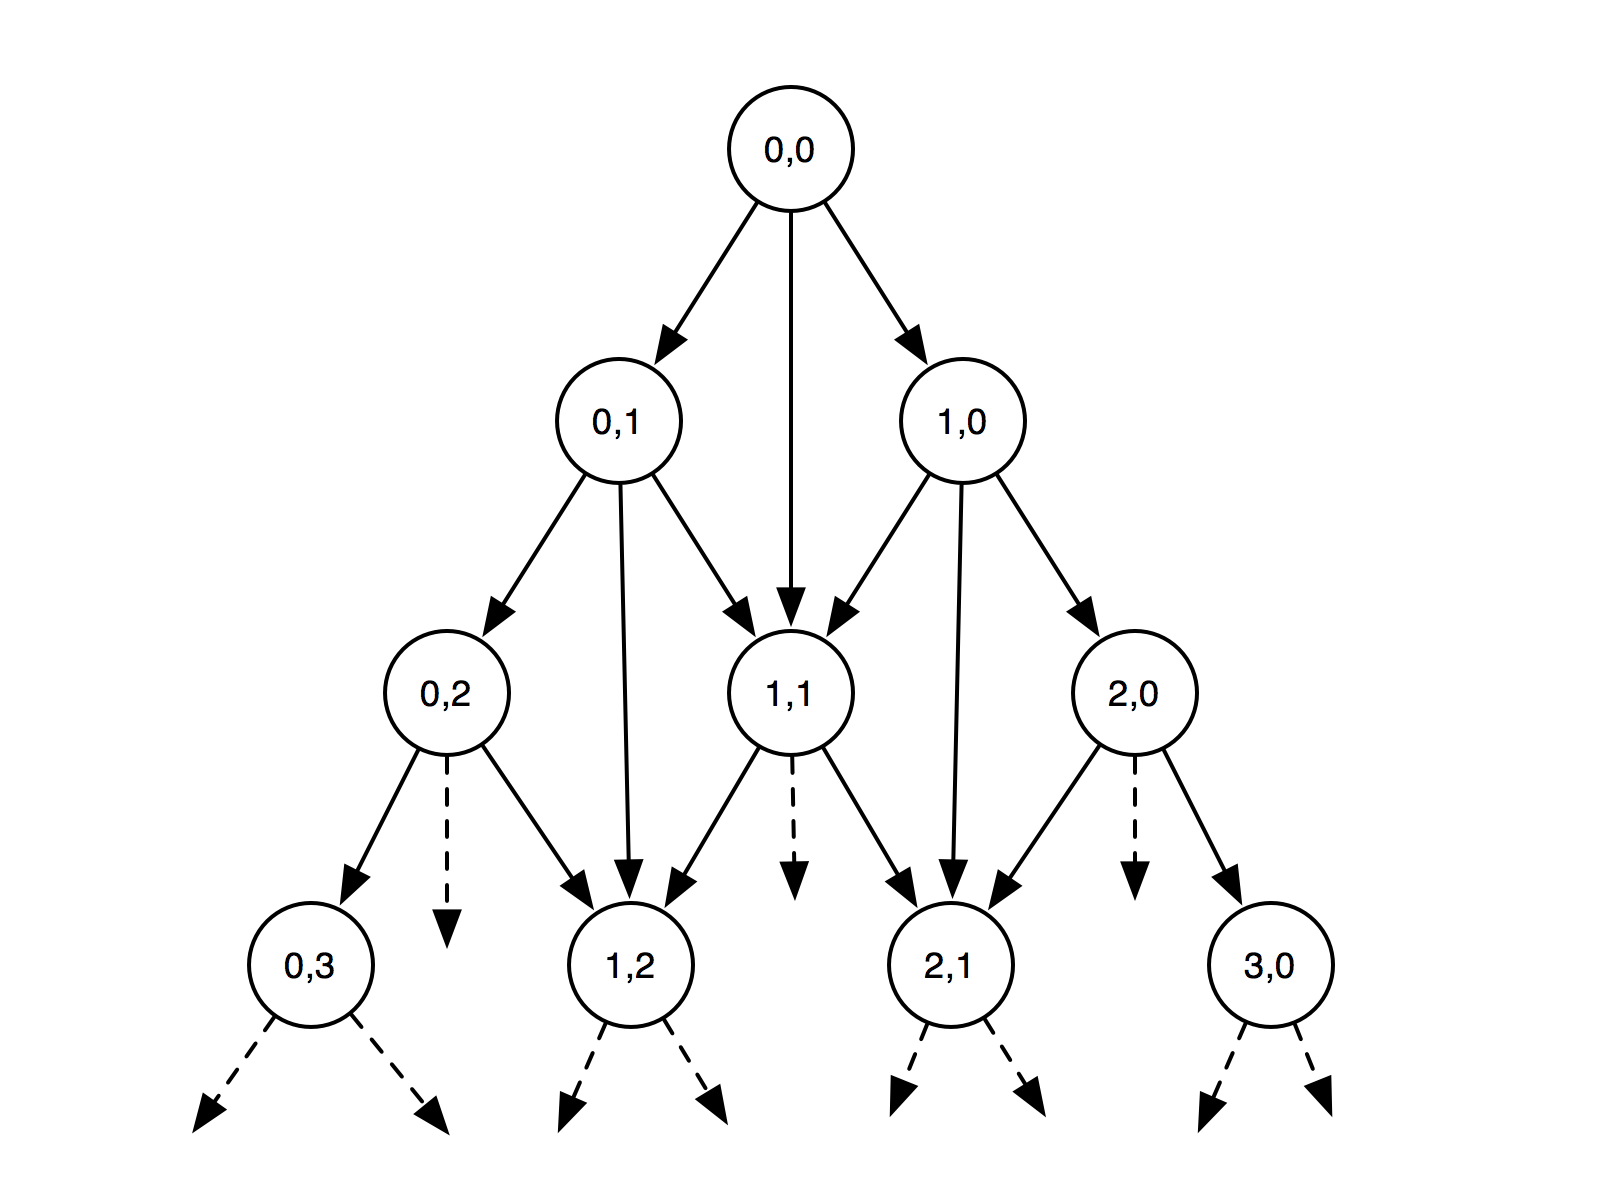 Designing a Tree Diff Algorithm Using Dynamic Programming